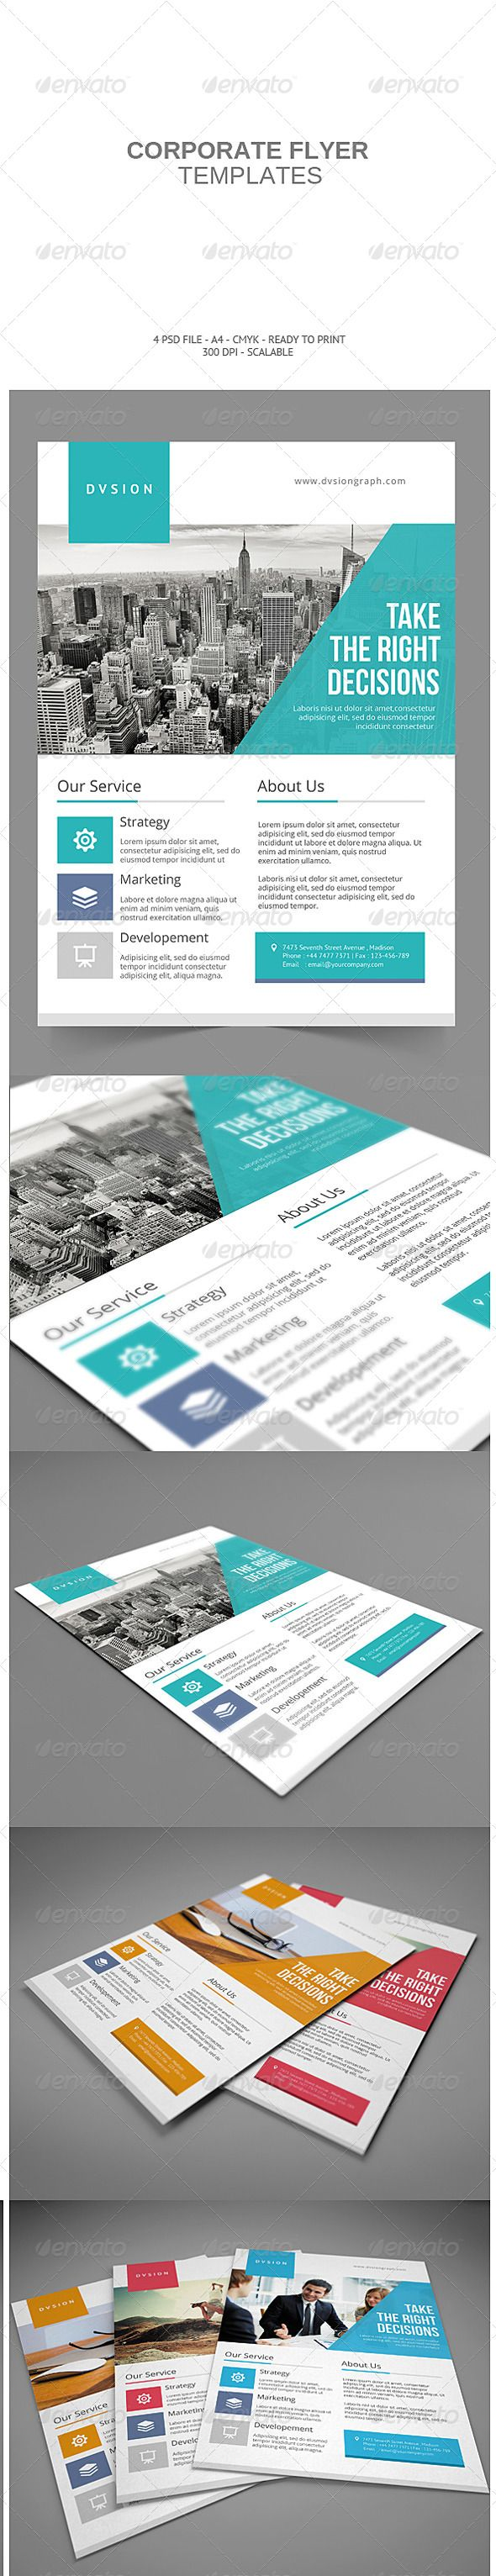 ideas about flyer template flyer design corporate flyer easy templatesflyer design